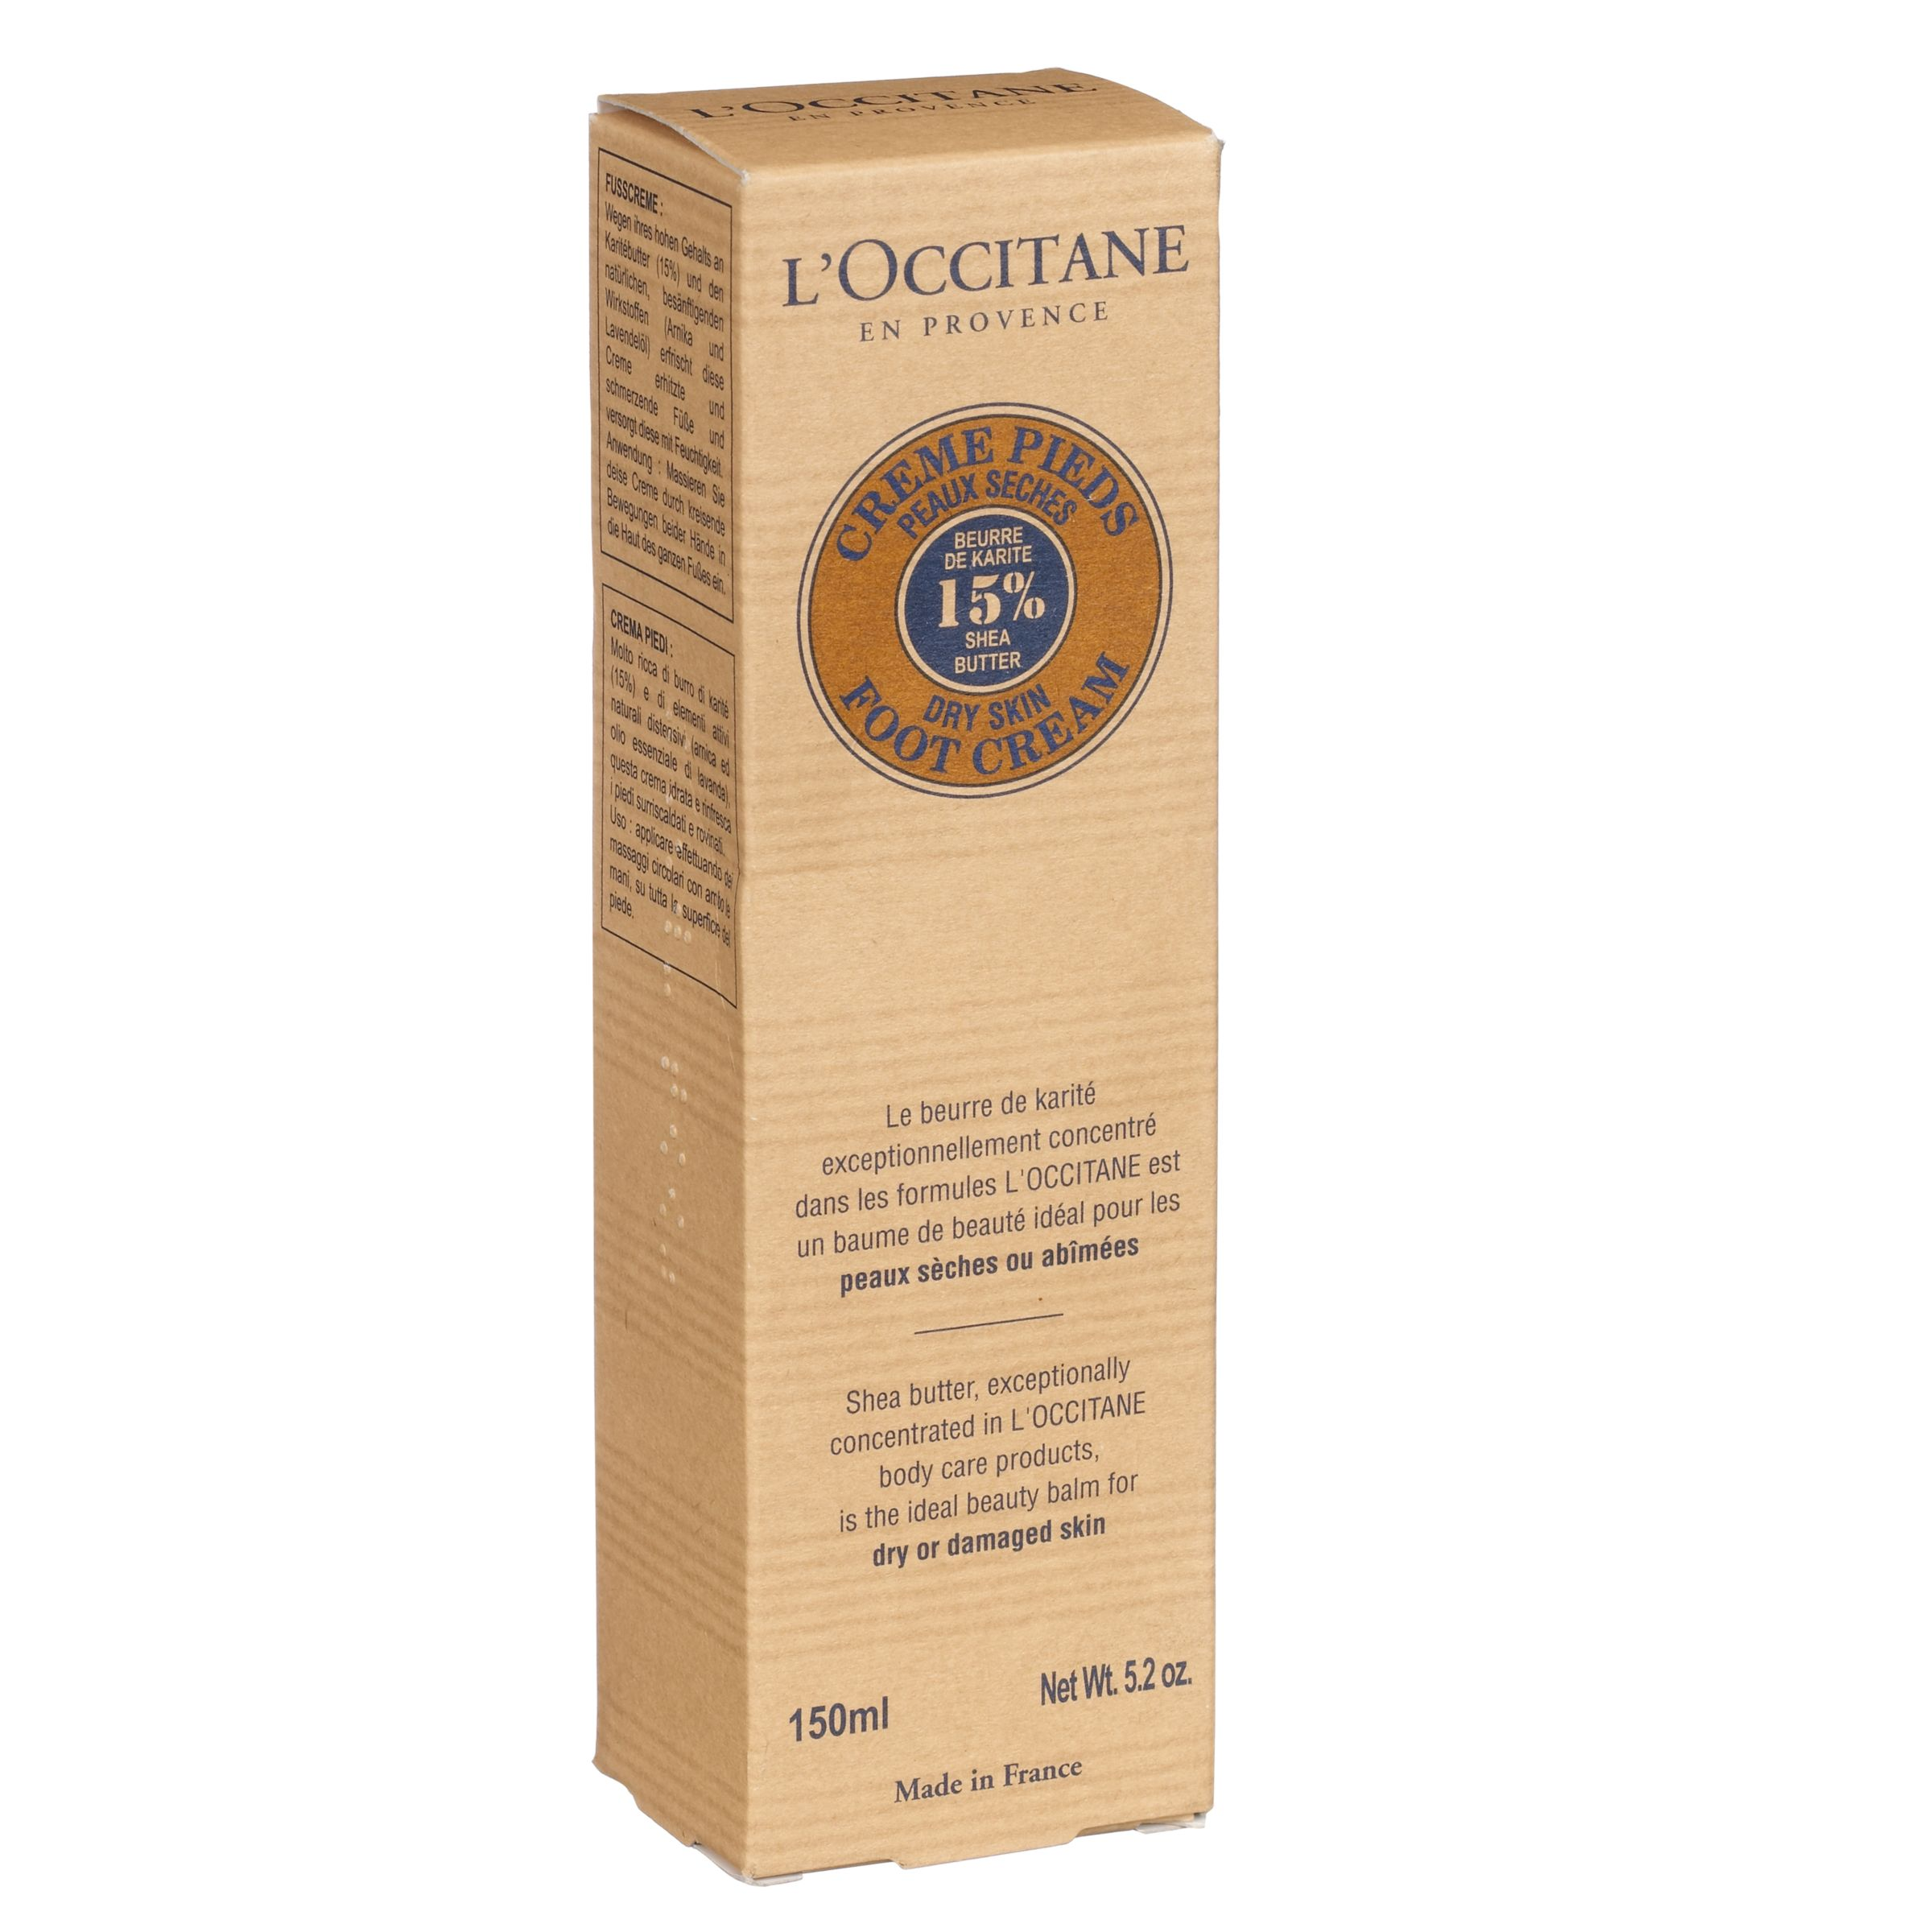 L'Occitane L'Occitane Shea Butter Foot Cream, 150ml